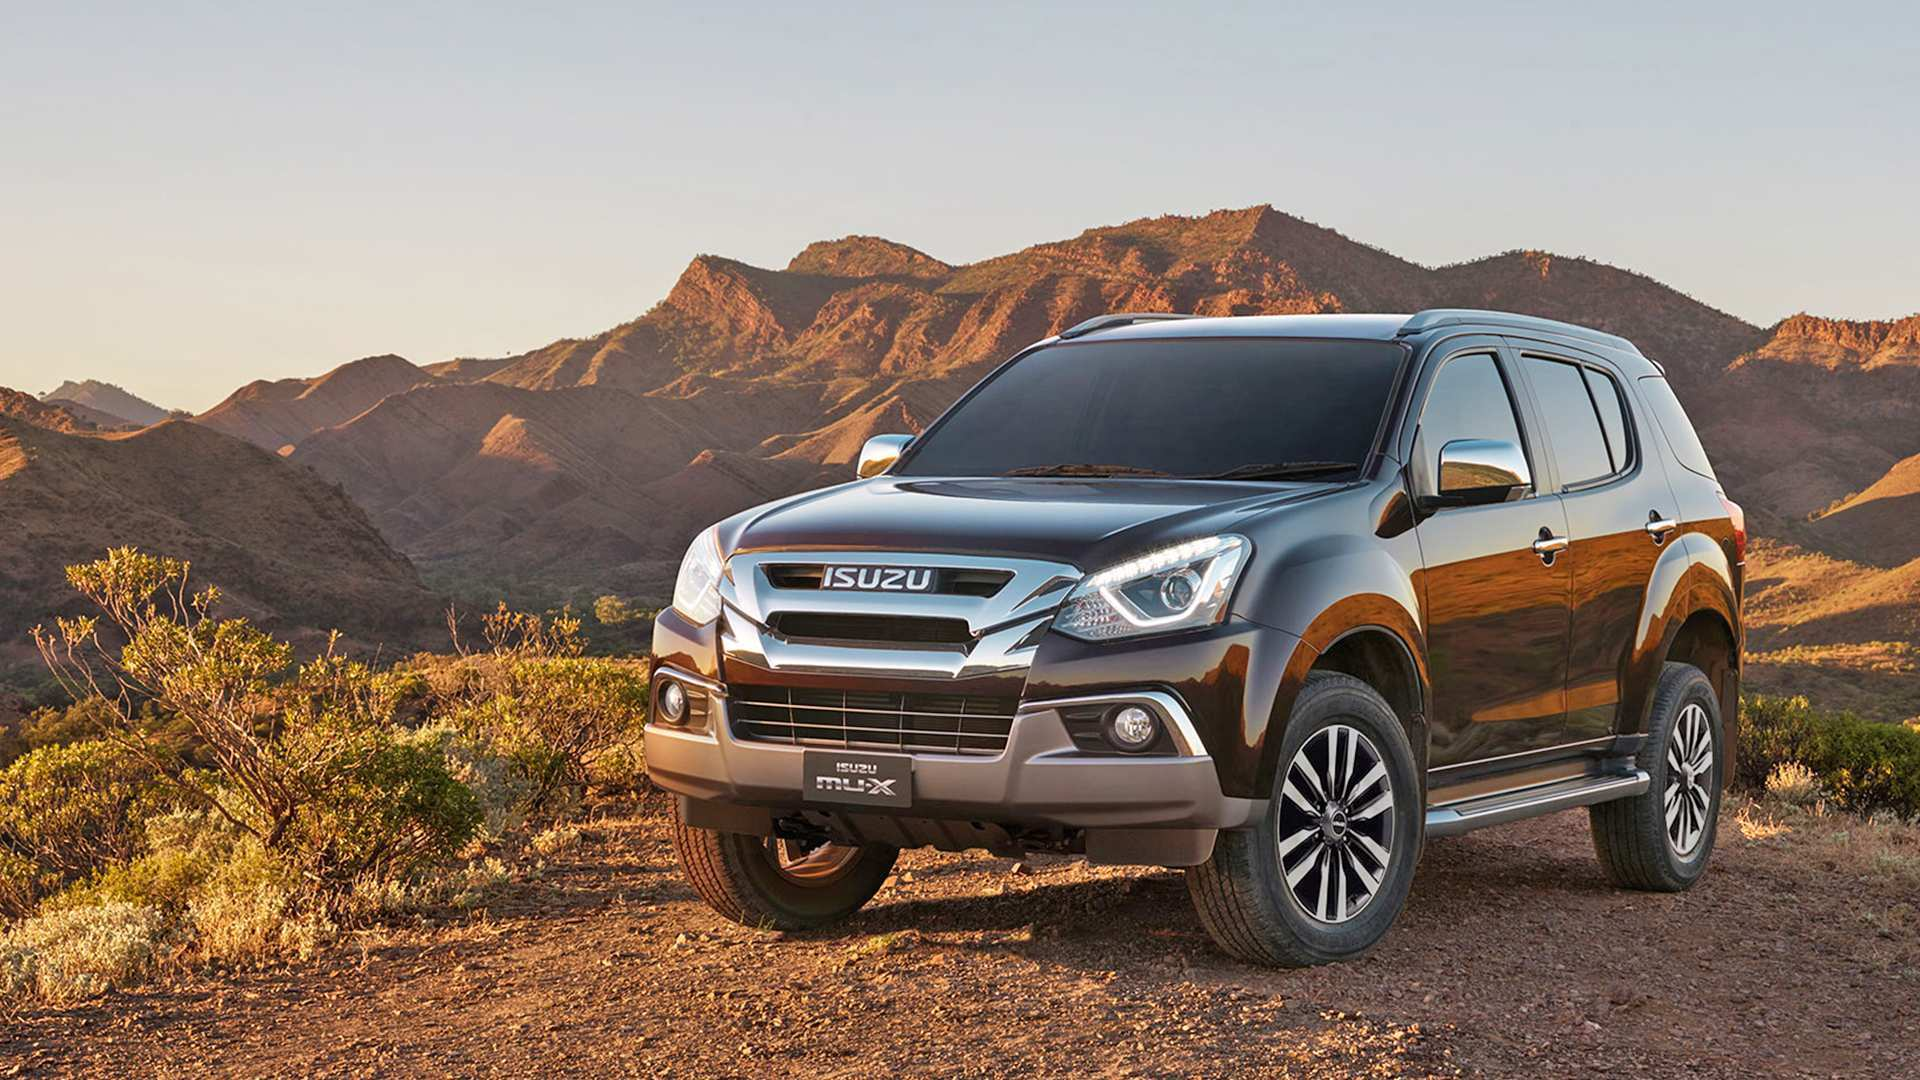 55 The 2019 Isuzu Mu X Performance